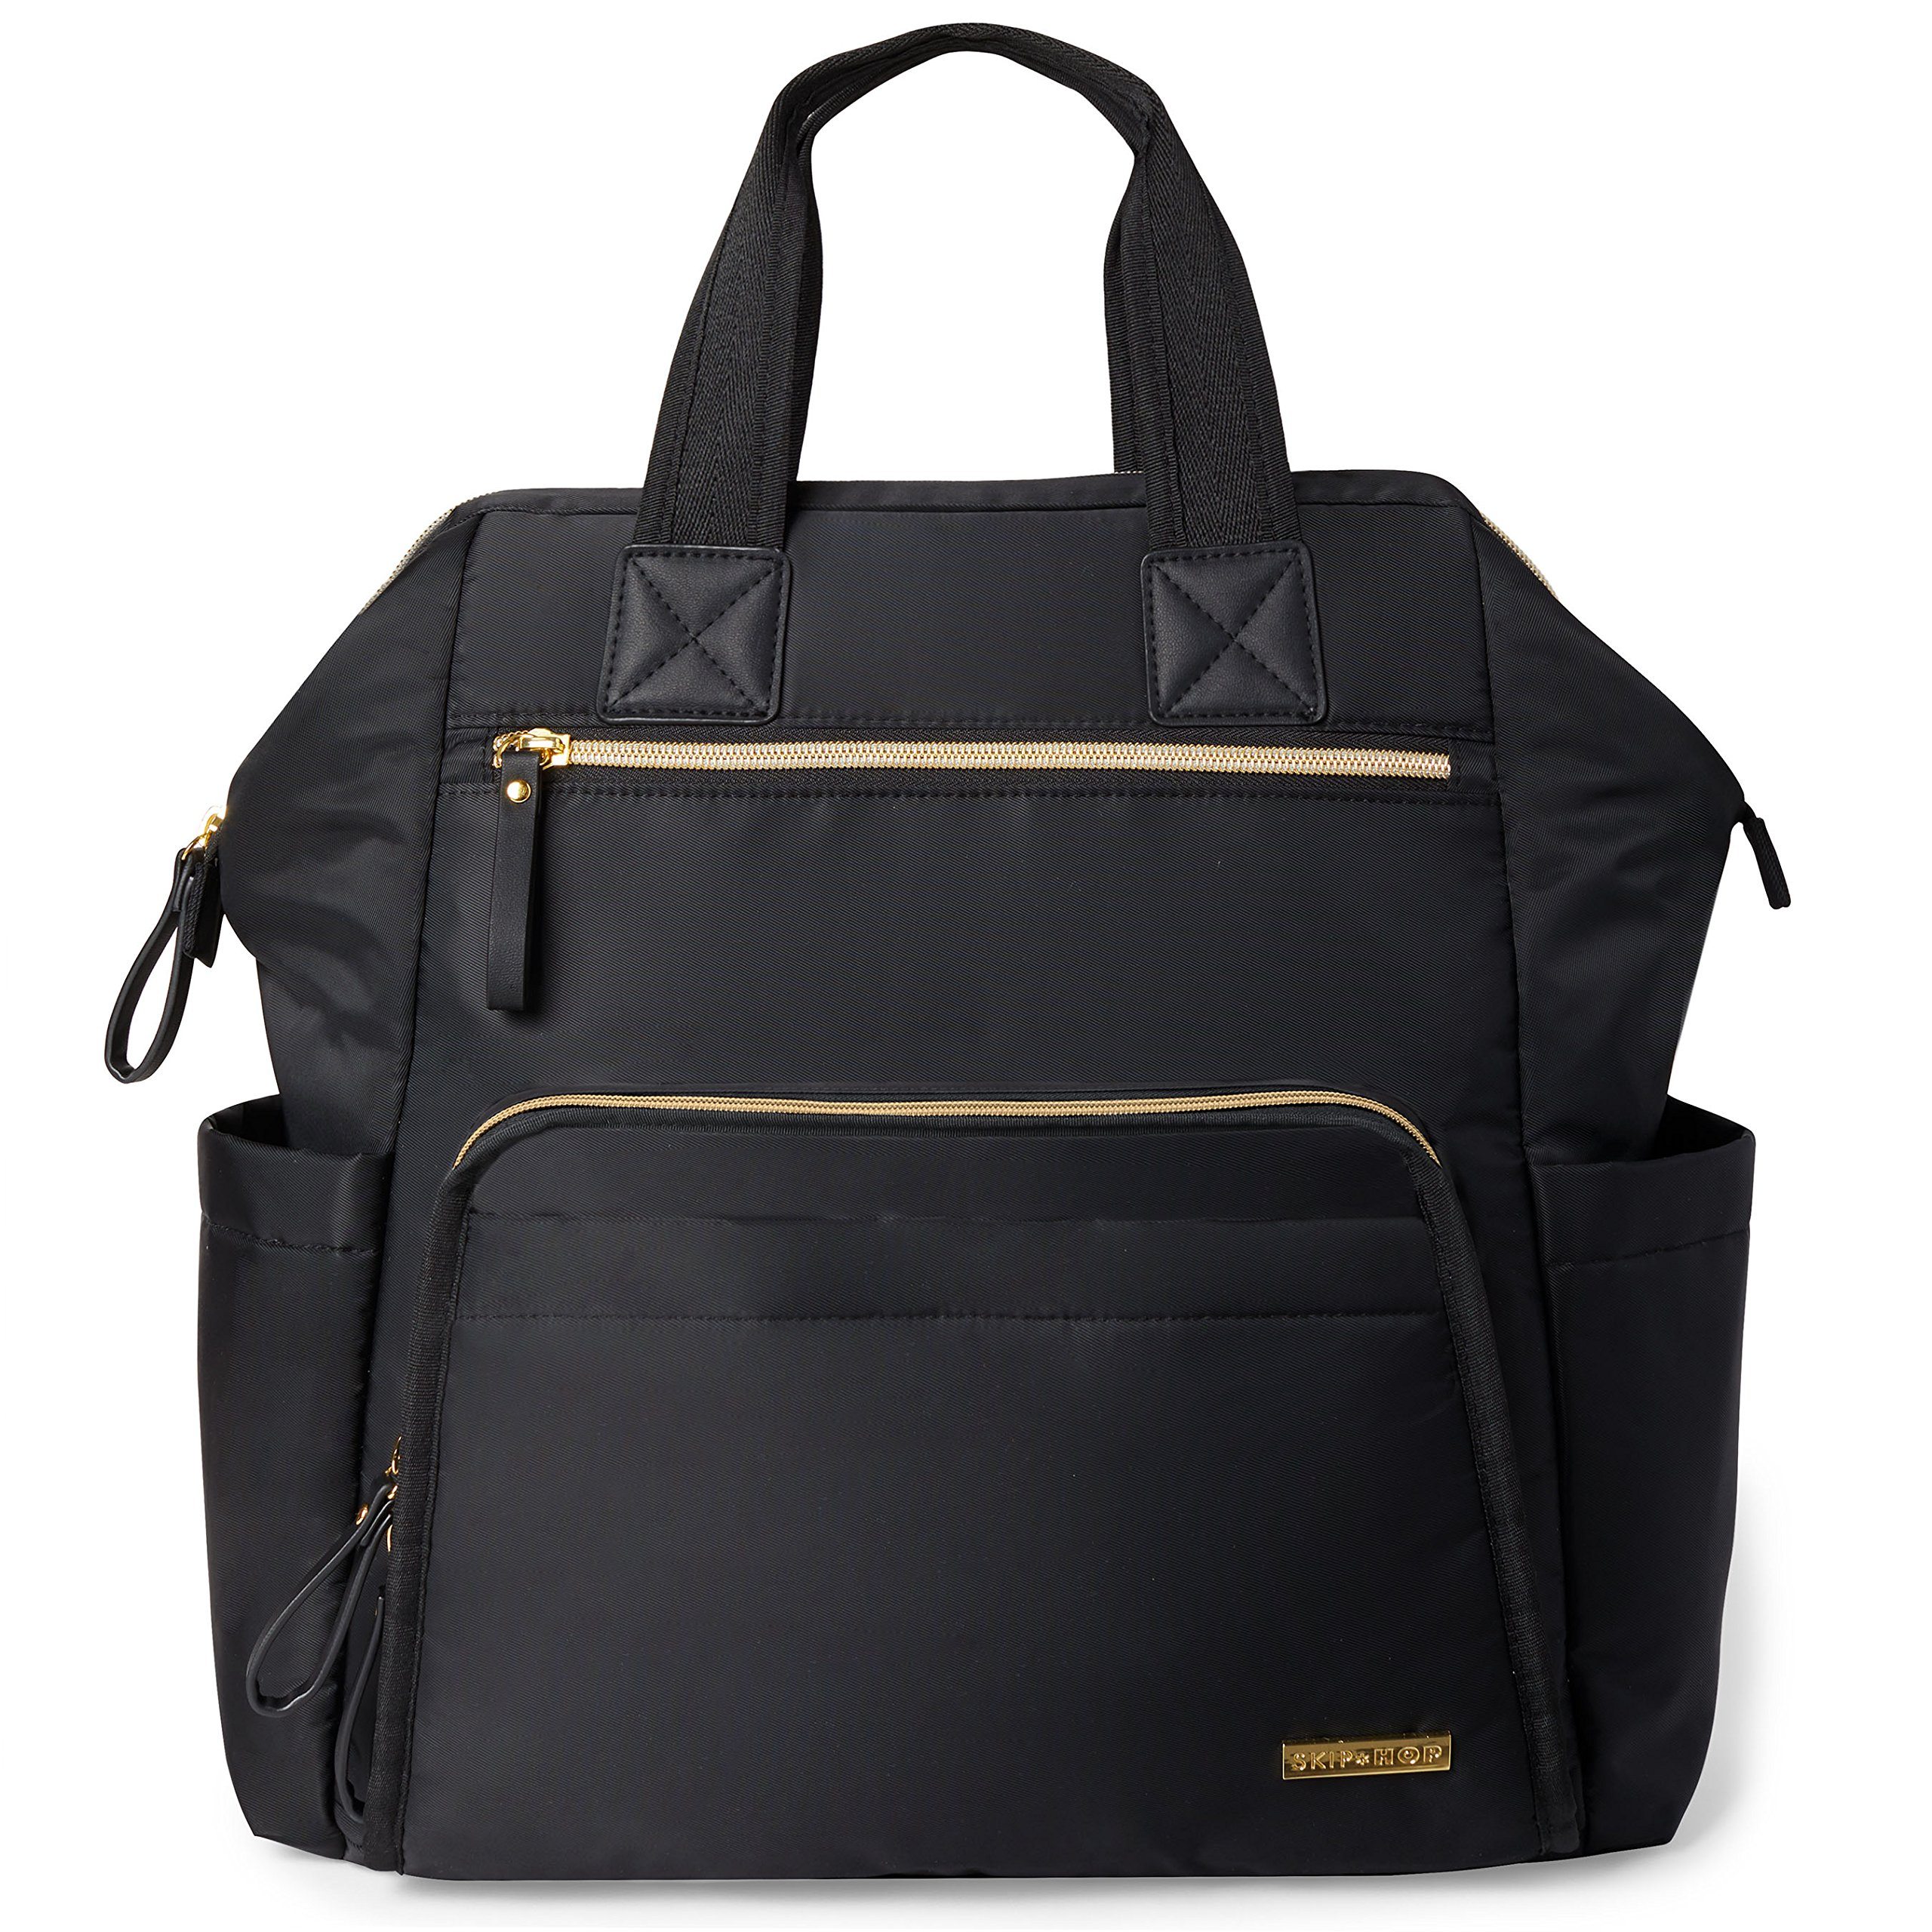 Diaper Bag Backpack, Mainframe Large Capacity Wide Open Structure, Black with Gold Trim, 14.25''x6.25''x14.75''